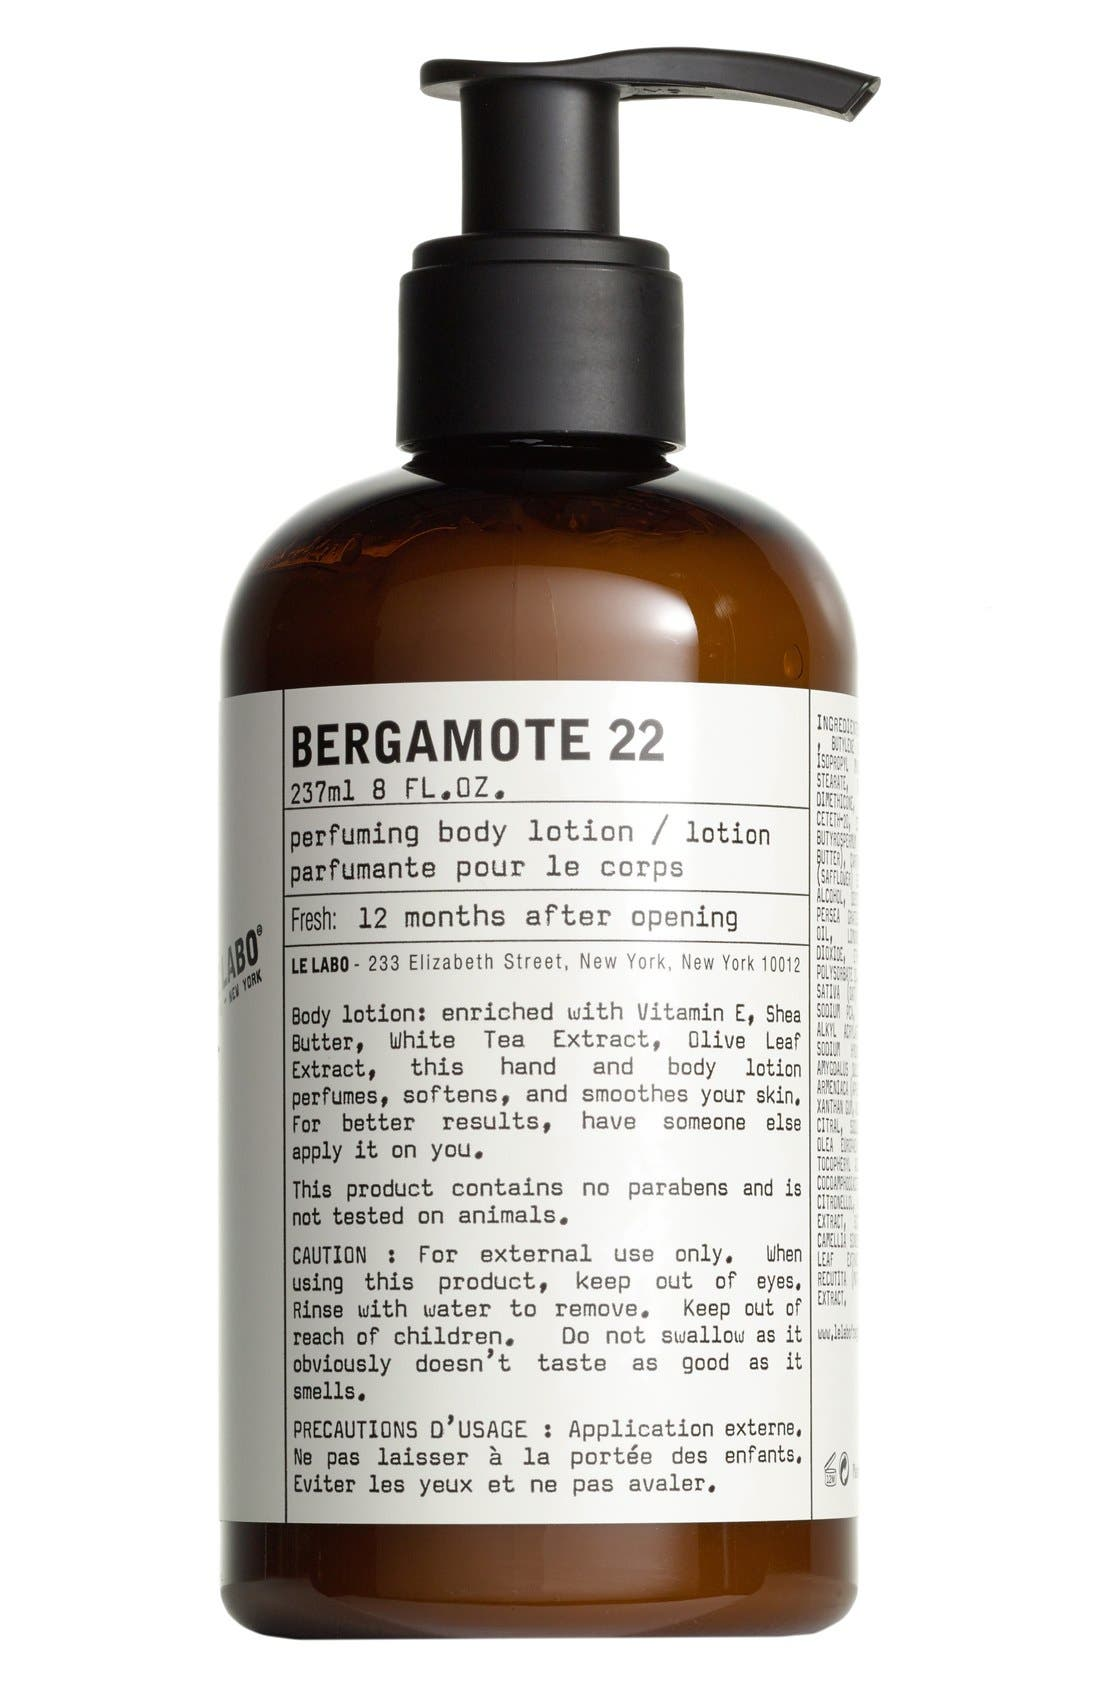 Le Labo 'Bergamote 22' Hand & Body Lotion